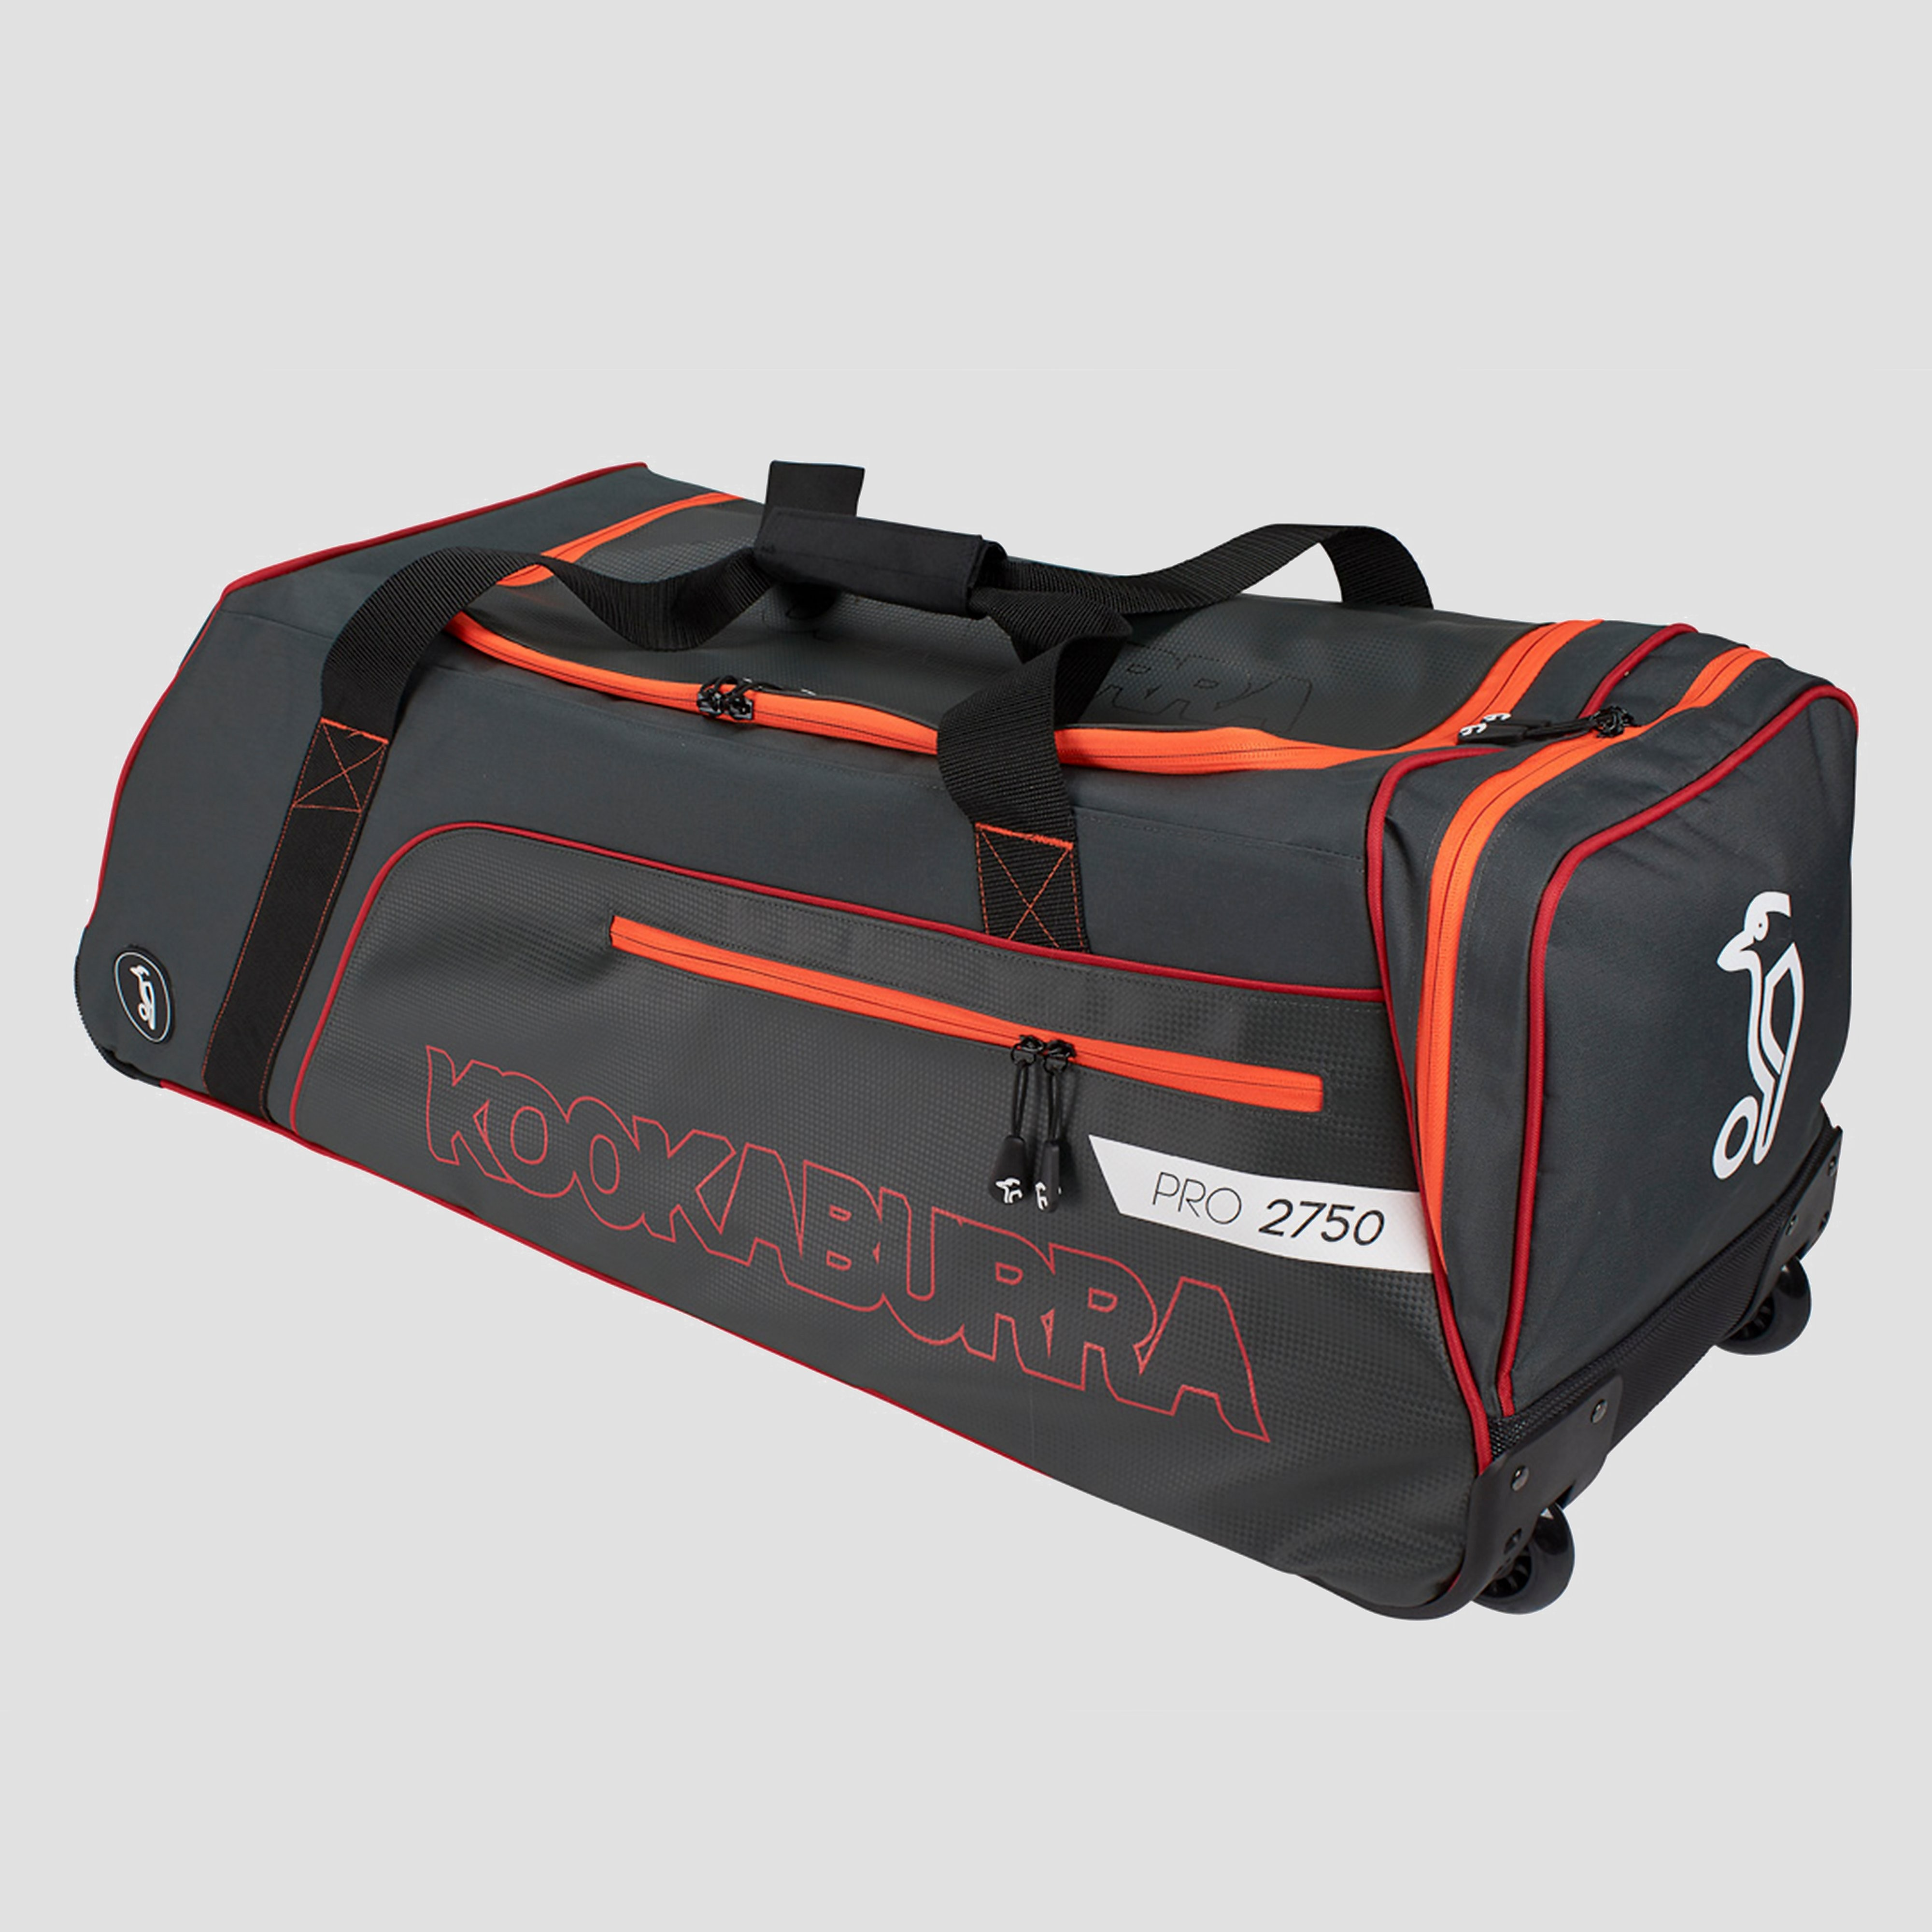 Kookaburra Pro 1500 Wheelie Cricket Bag